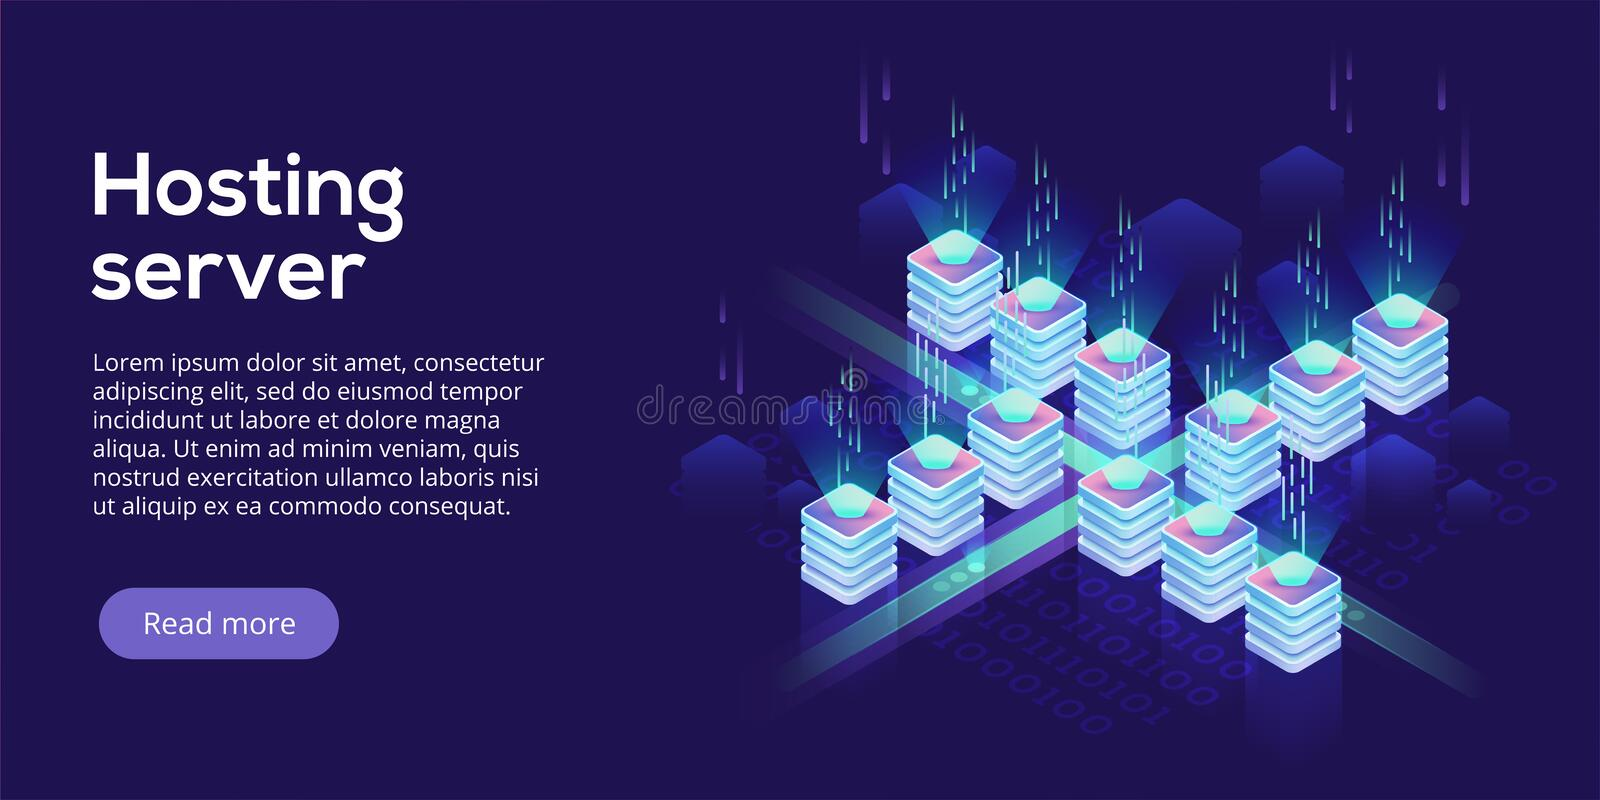 Hosting server isometric vector illustration. Abstract 3d datacenter or data center room background. Network mainframe royalty free illustration